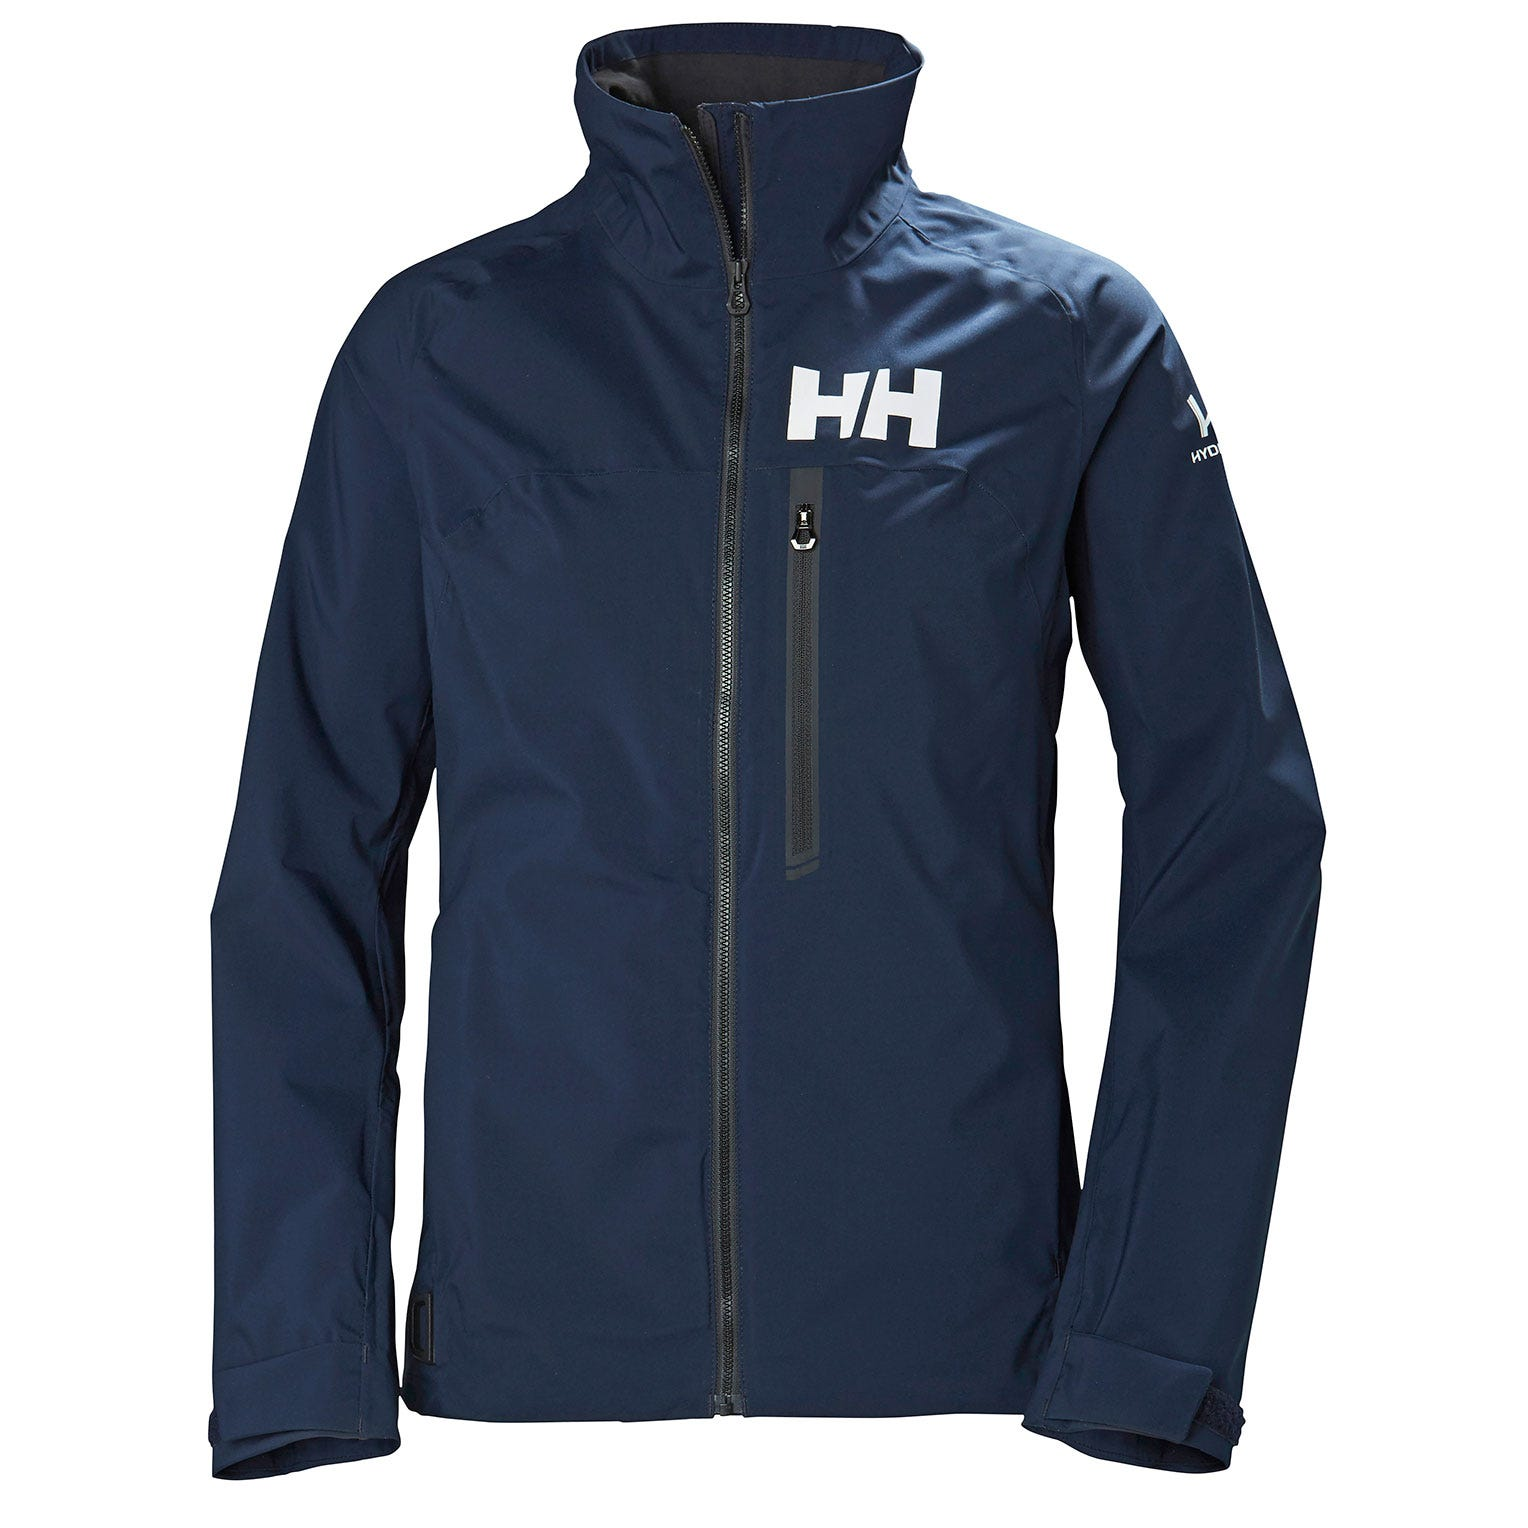 Helly Hansen Womens Hp Racing Sailing Jacket Navy XS